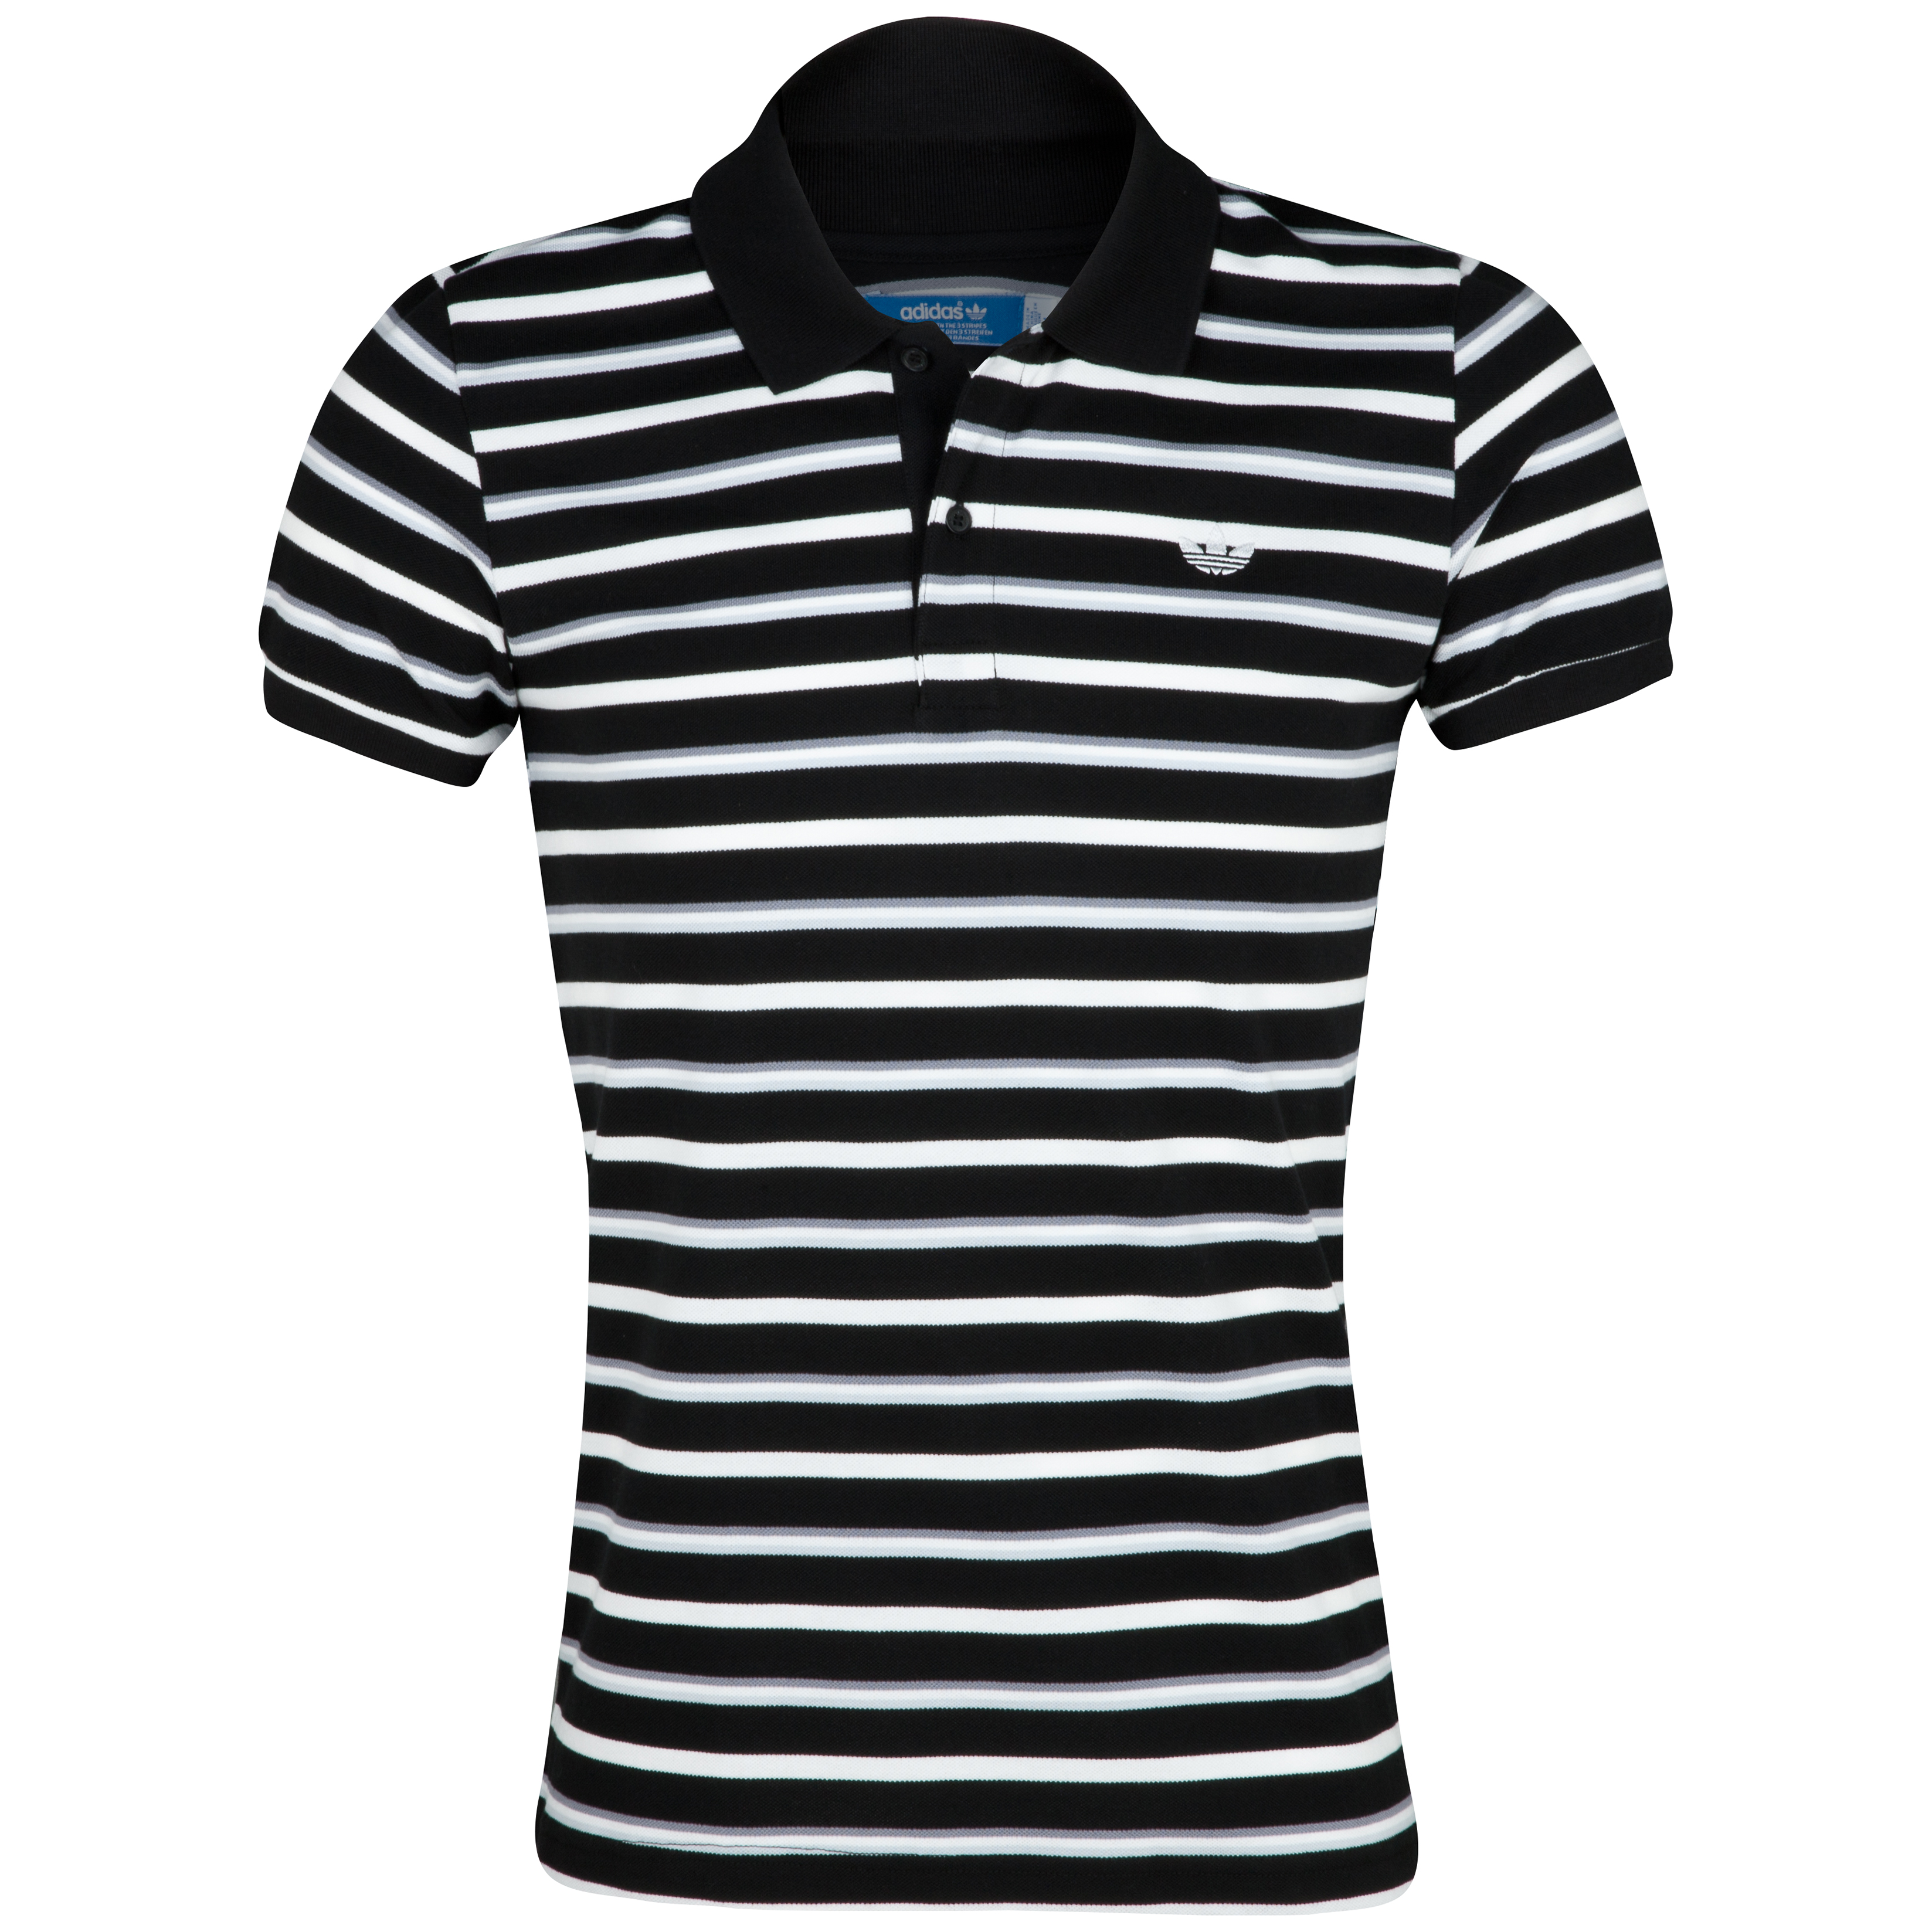 Originals Striped Polo - Black